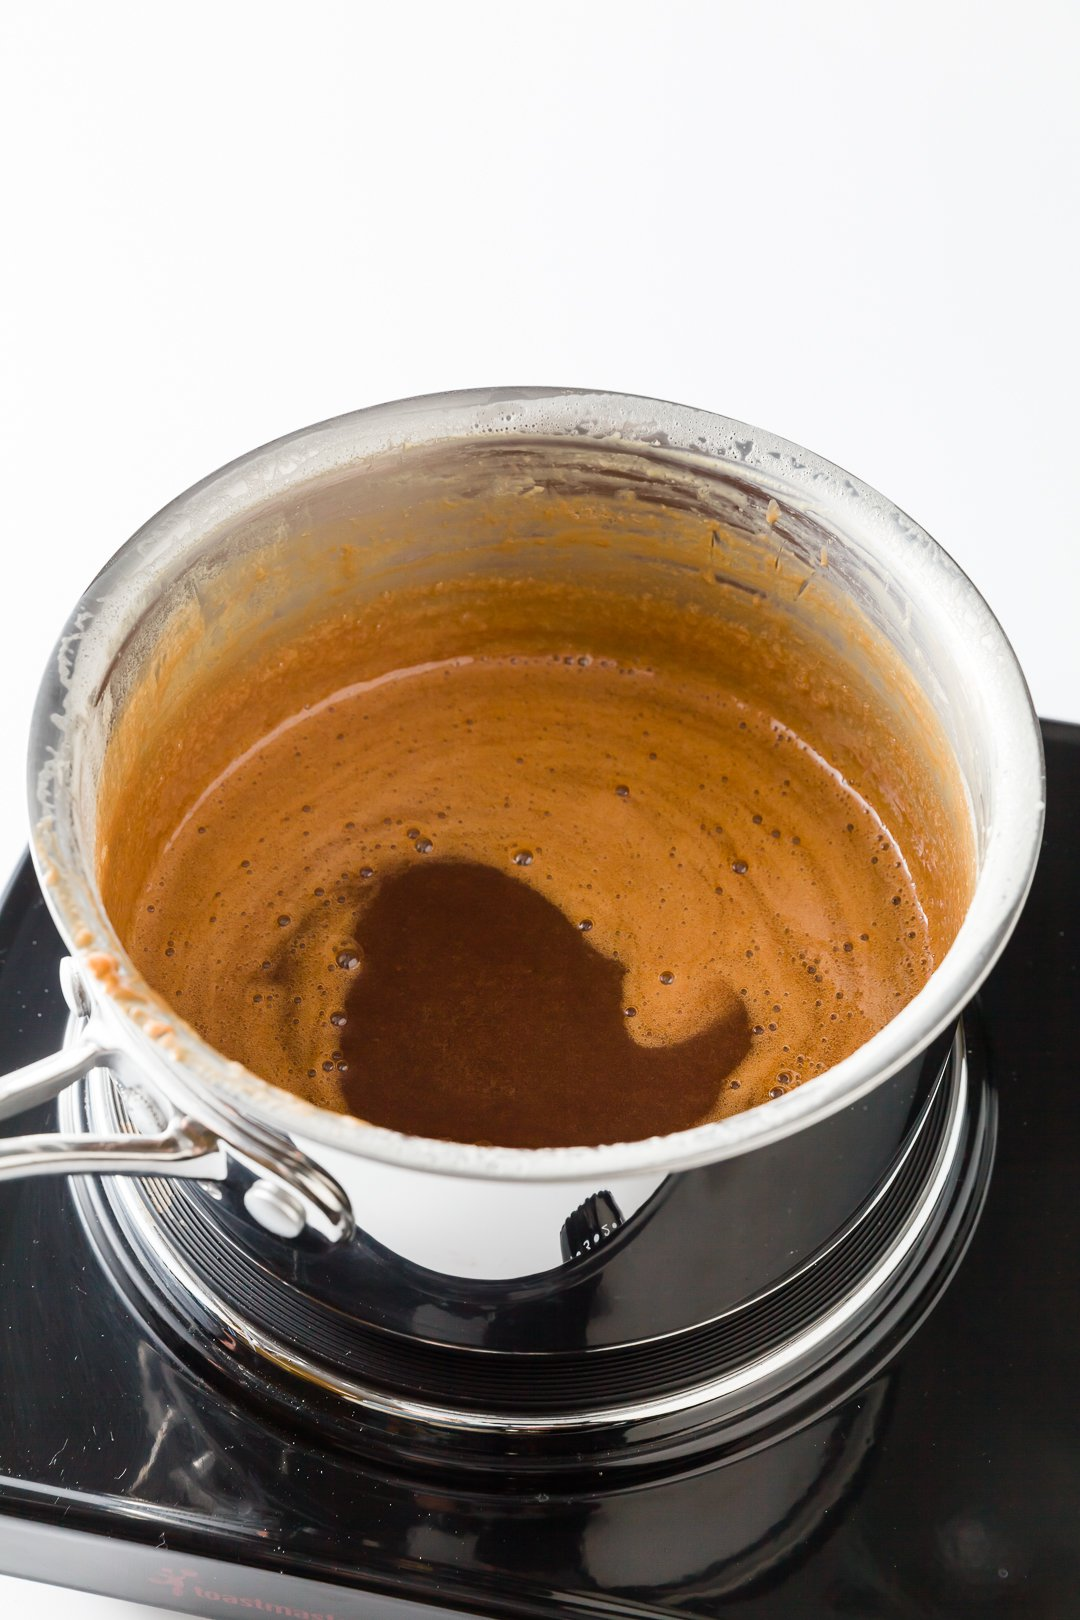 Dulce de leche in pot